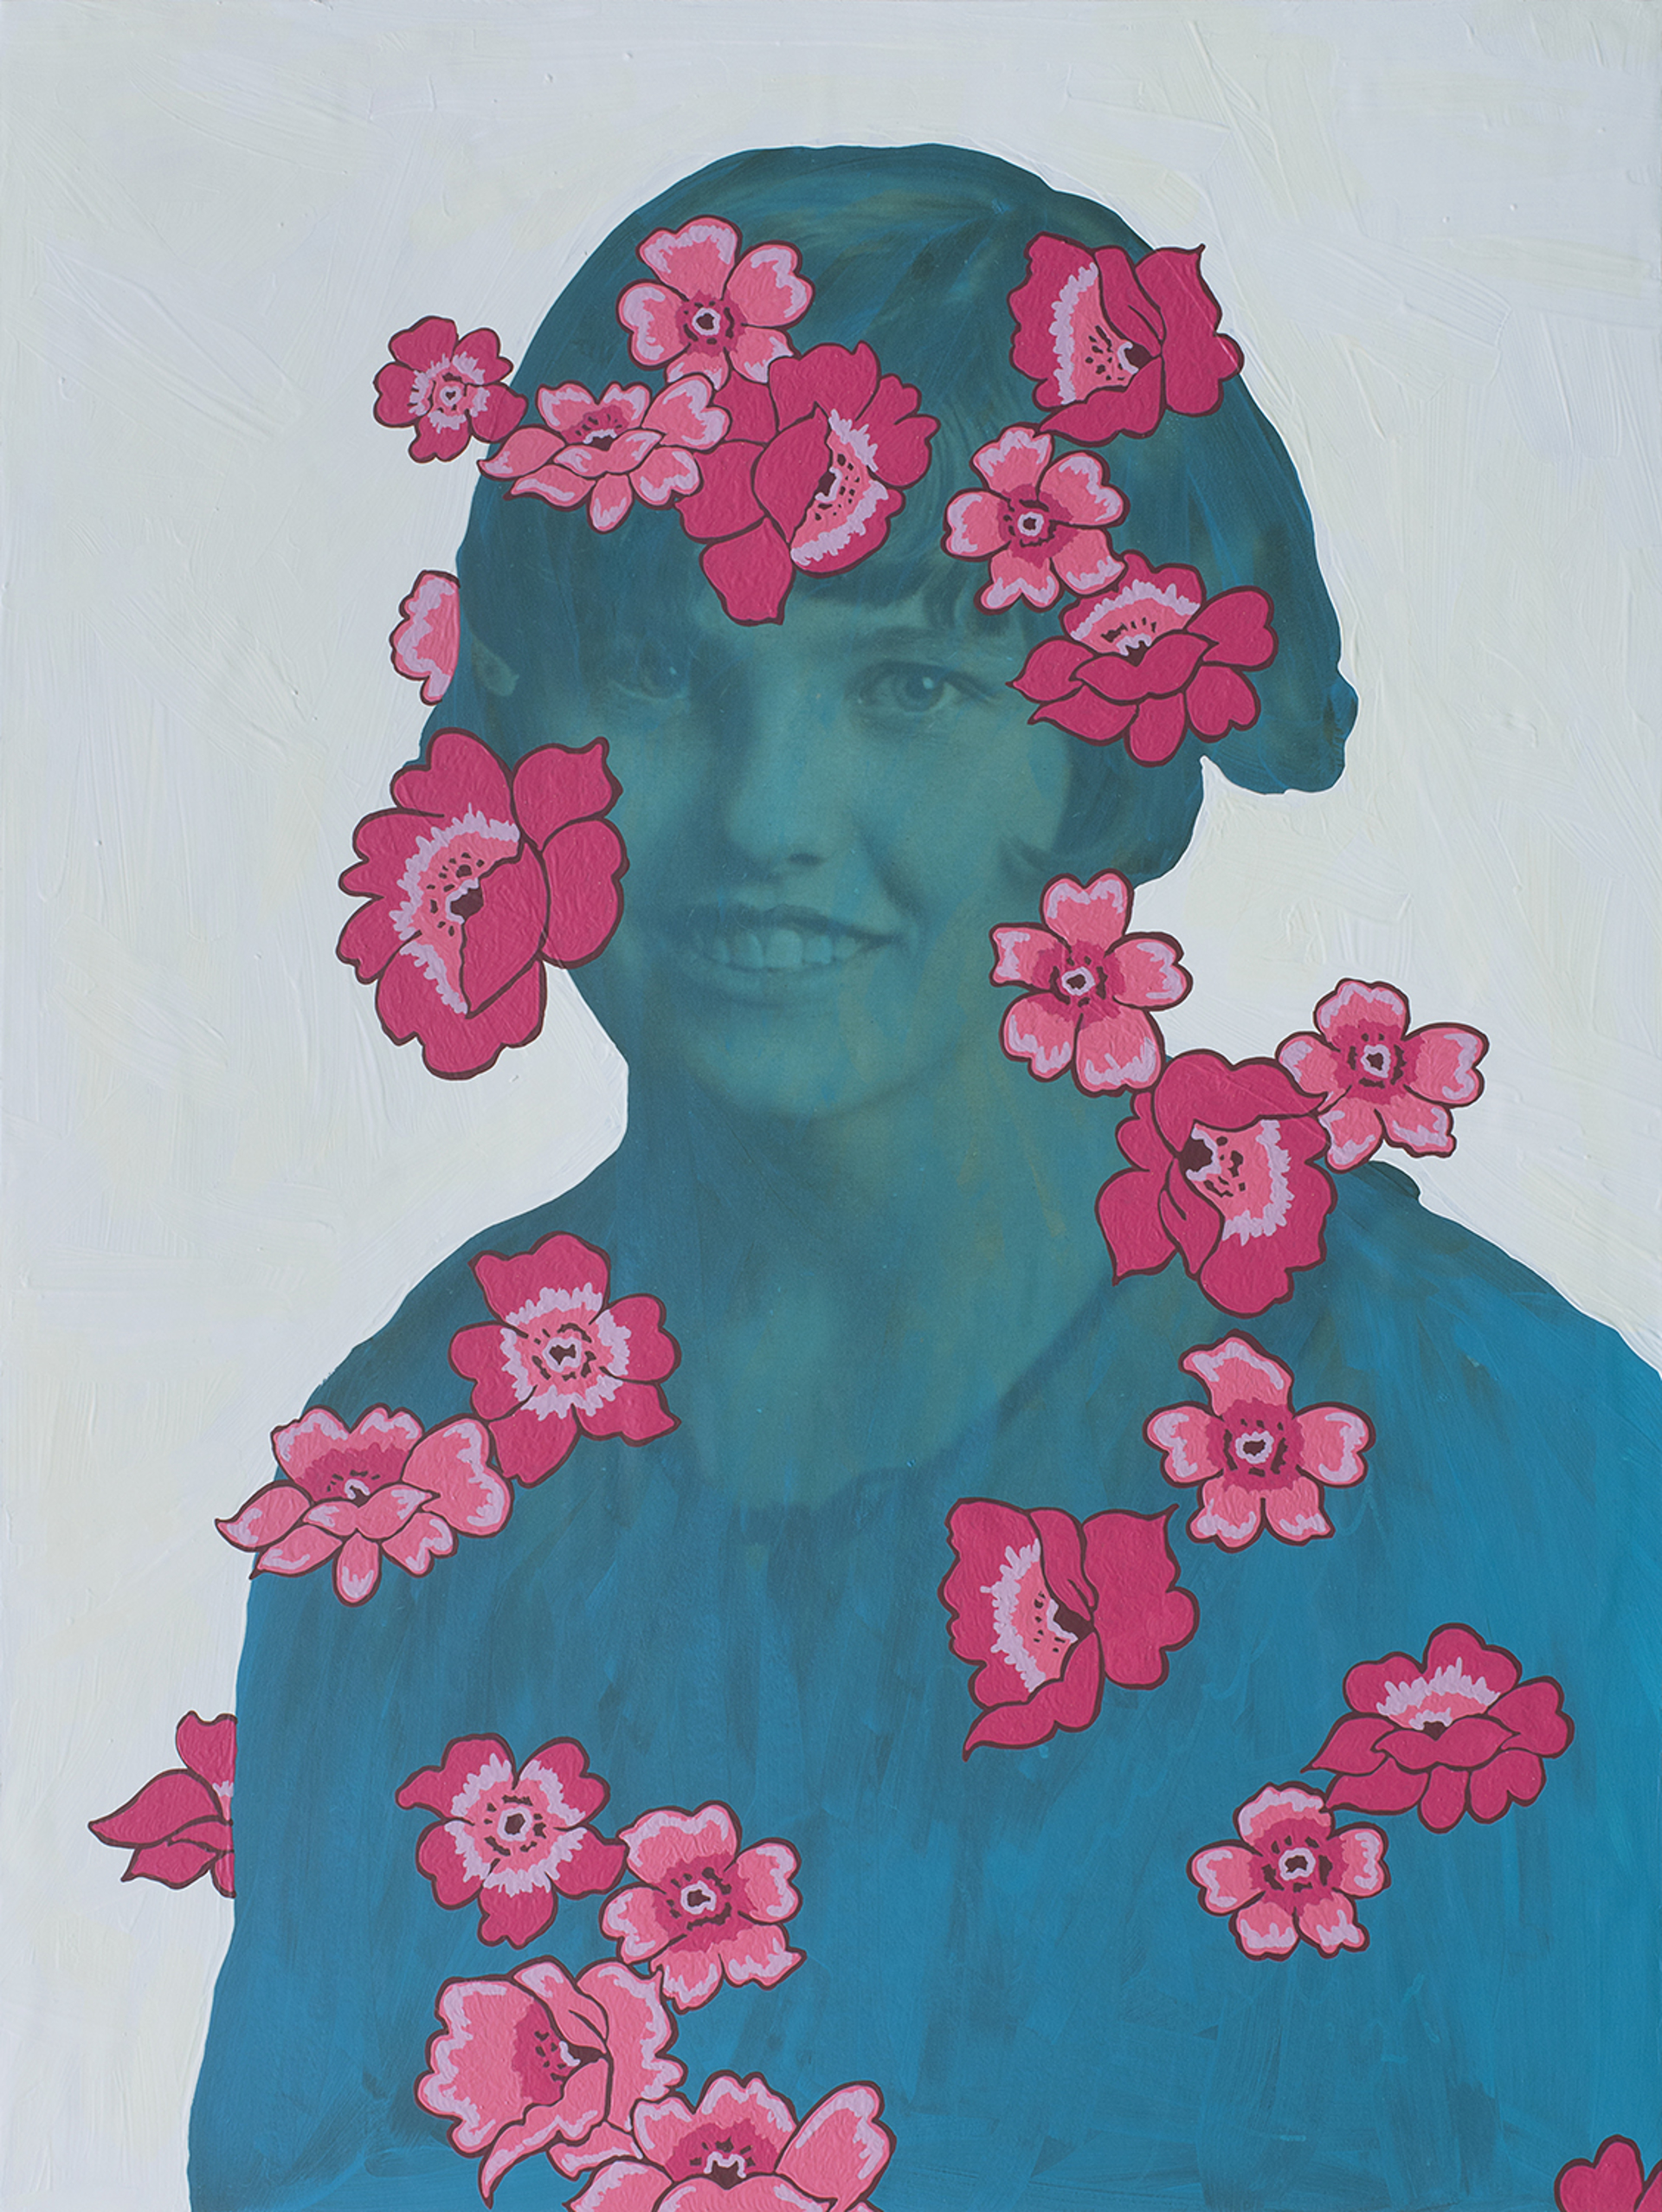 Untitled (Sincerely Ethel '27 Don't Forget the Night of Prom Forget me not Remember Me) by Daisy Patton